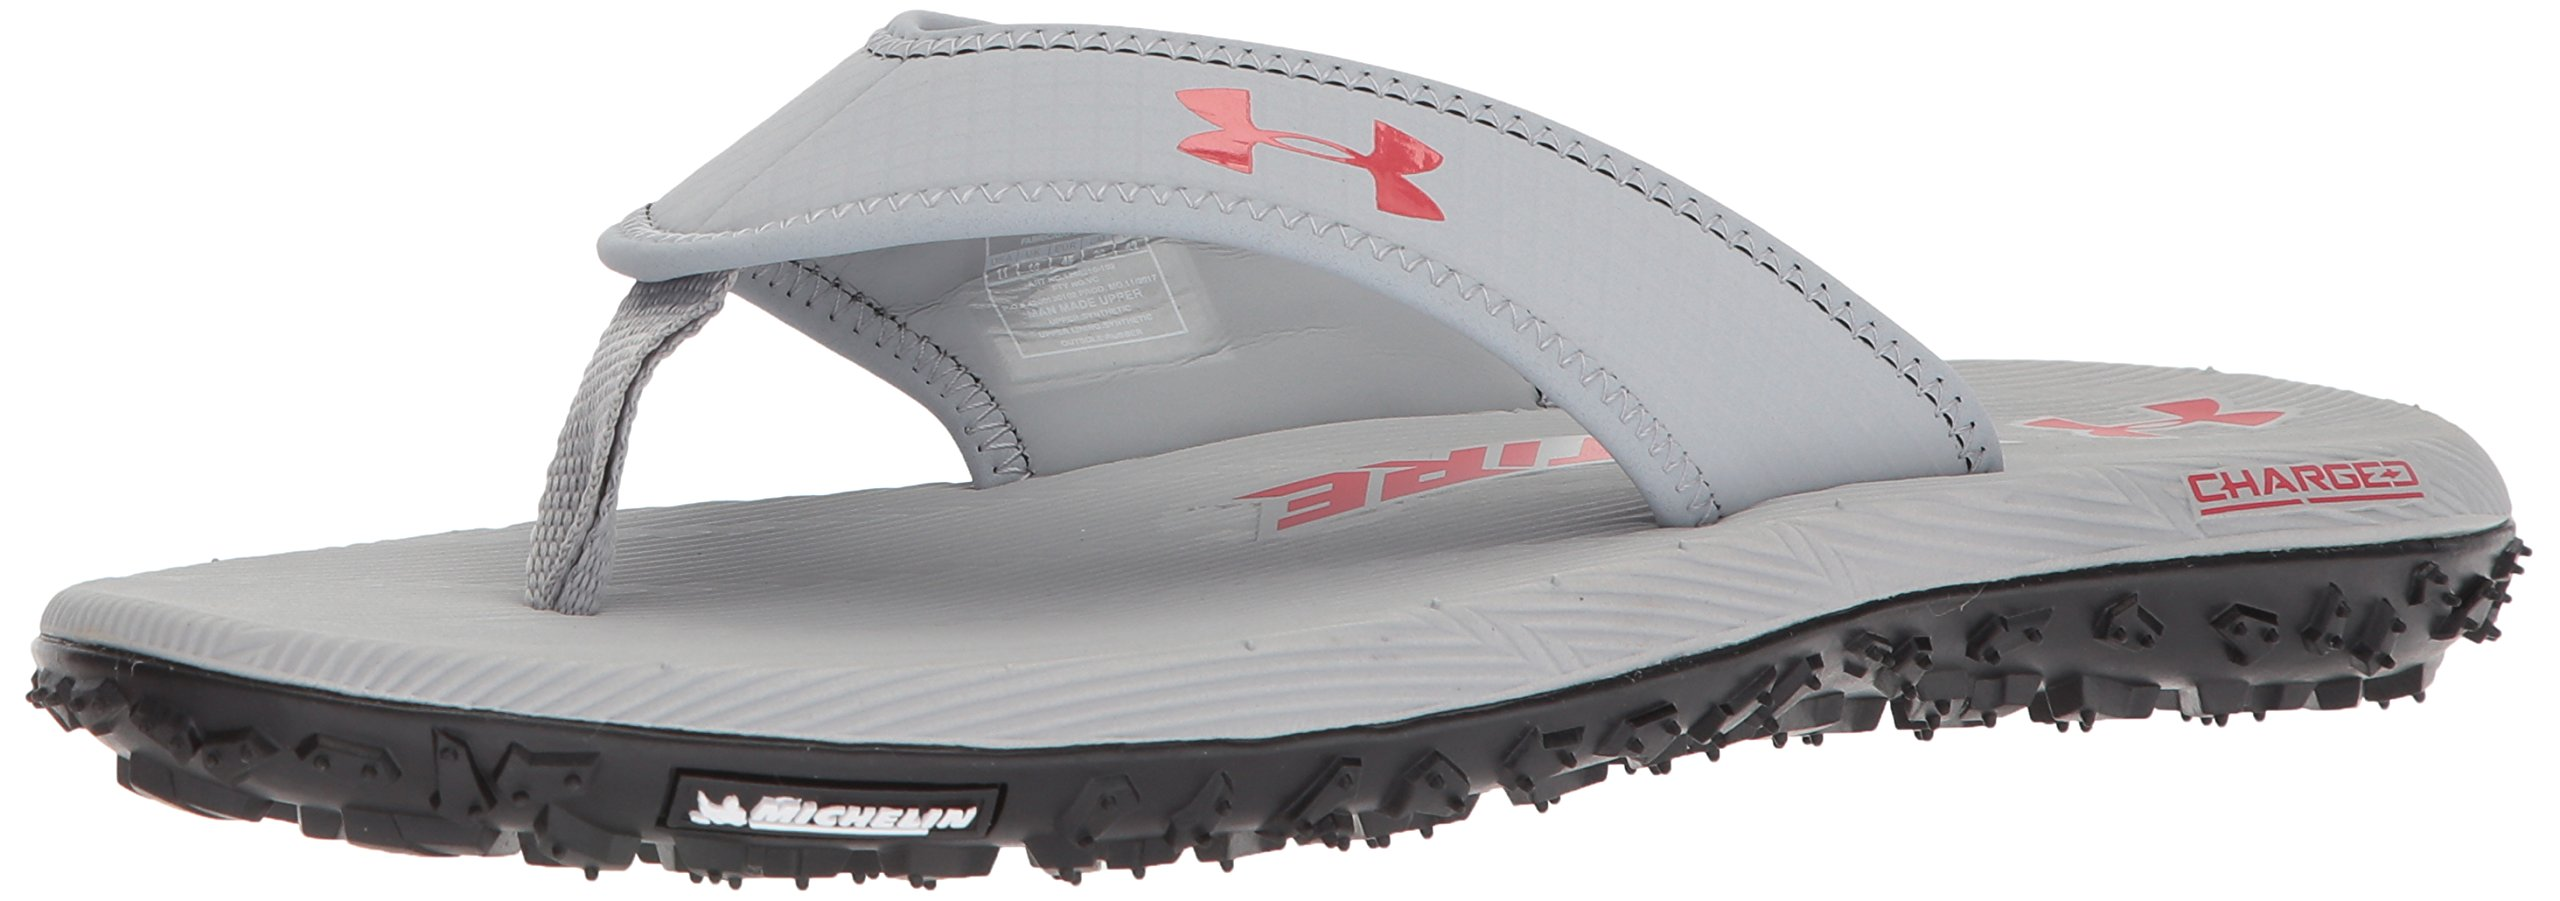 559fb330ee4e Galleon - Under Armour Men s Fat Tire Flip-Flop